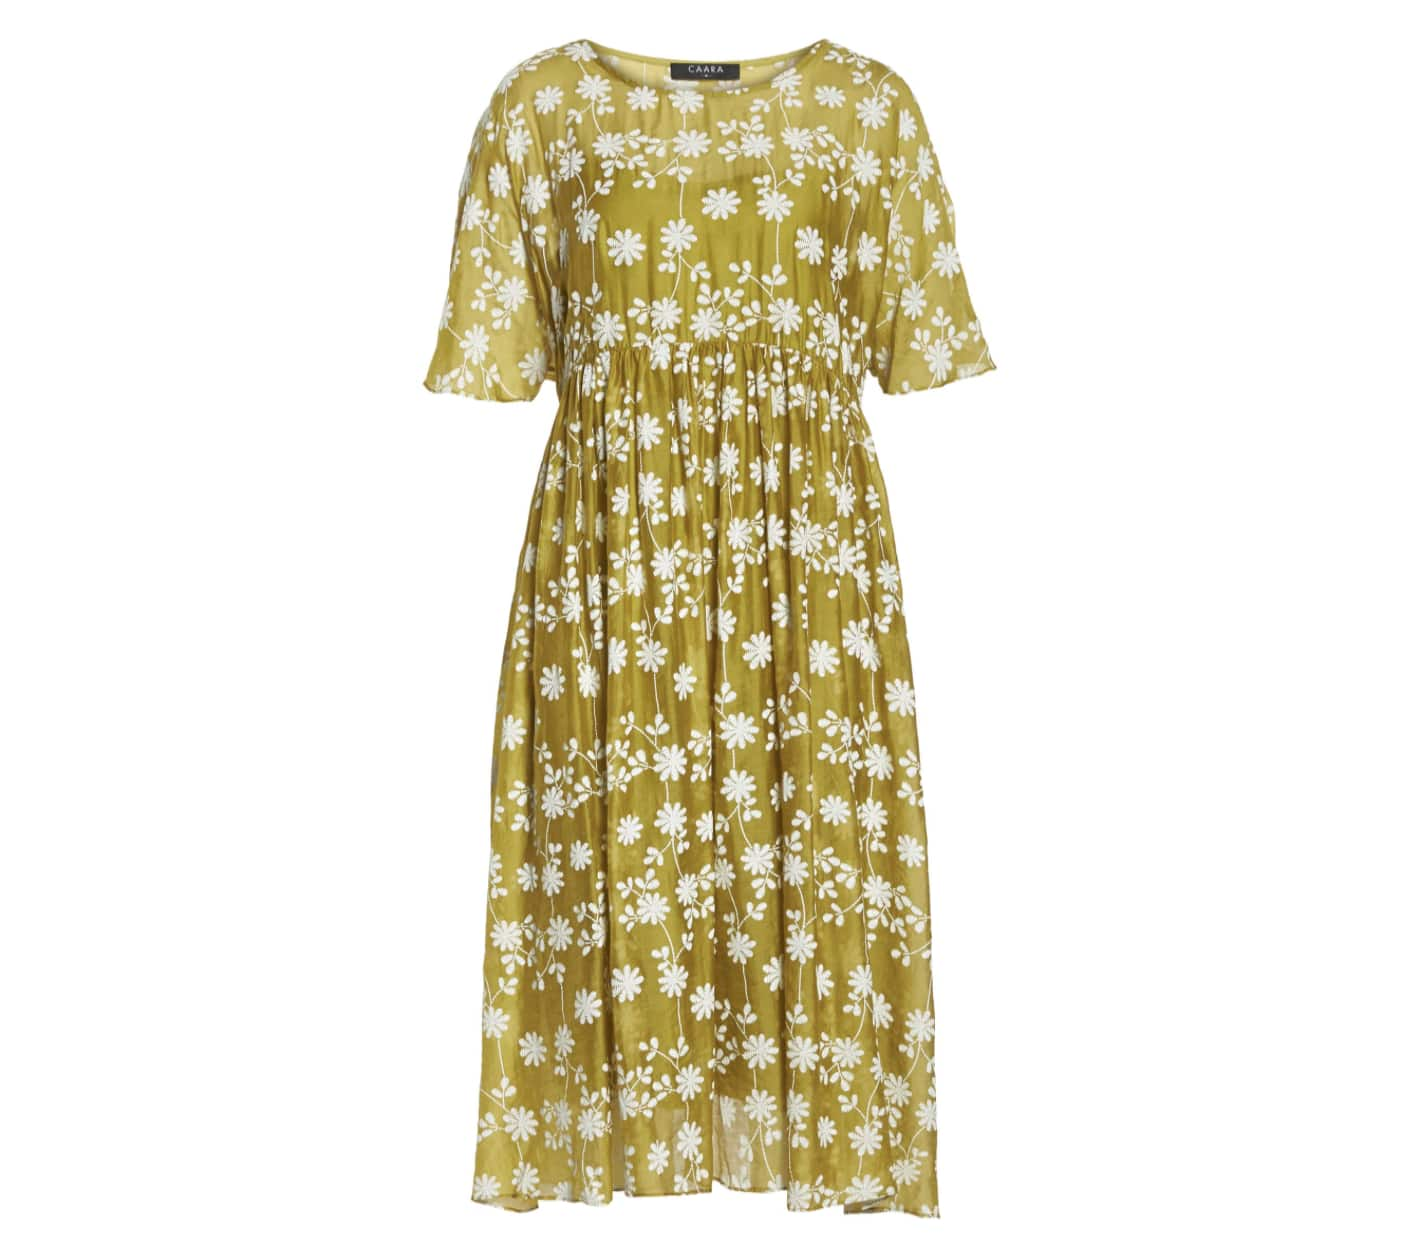 CAARA Daisy Picking Floral Dress